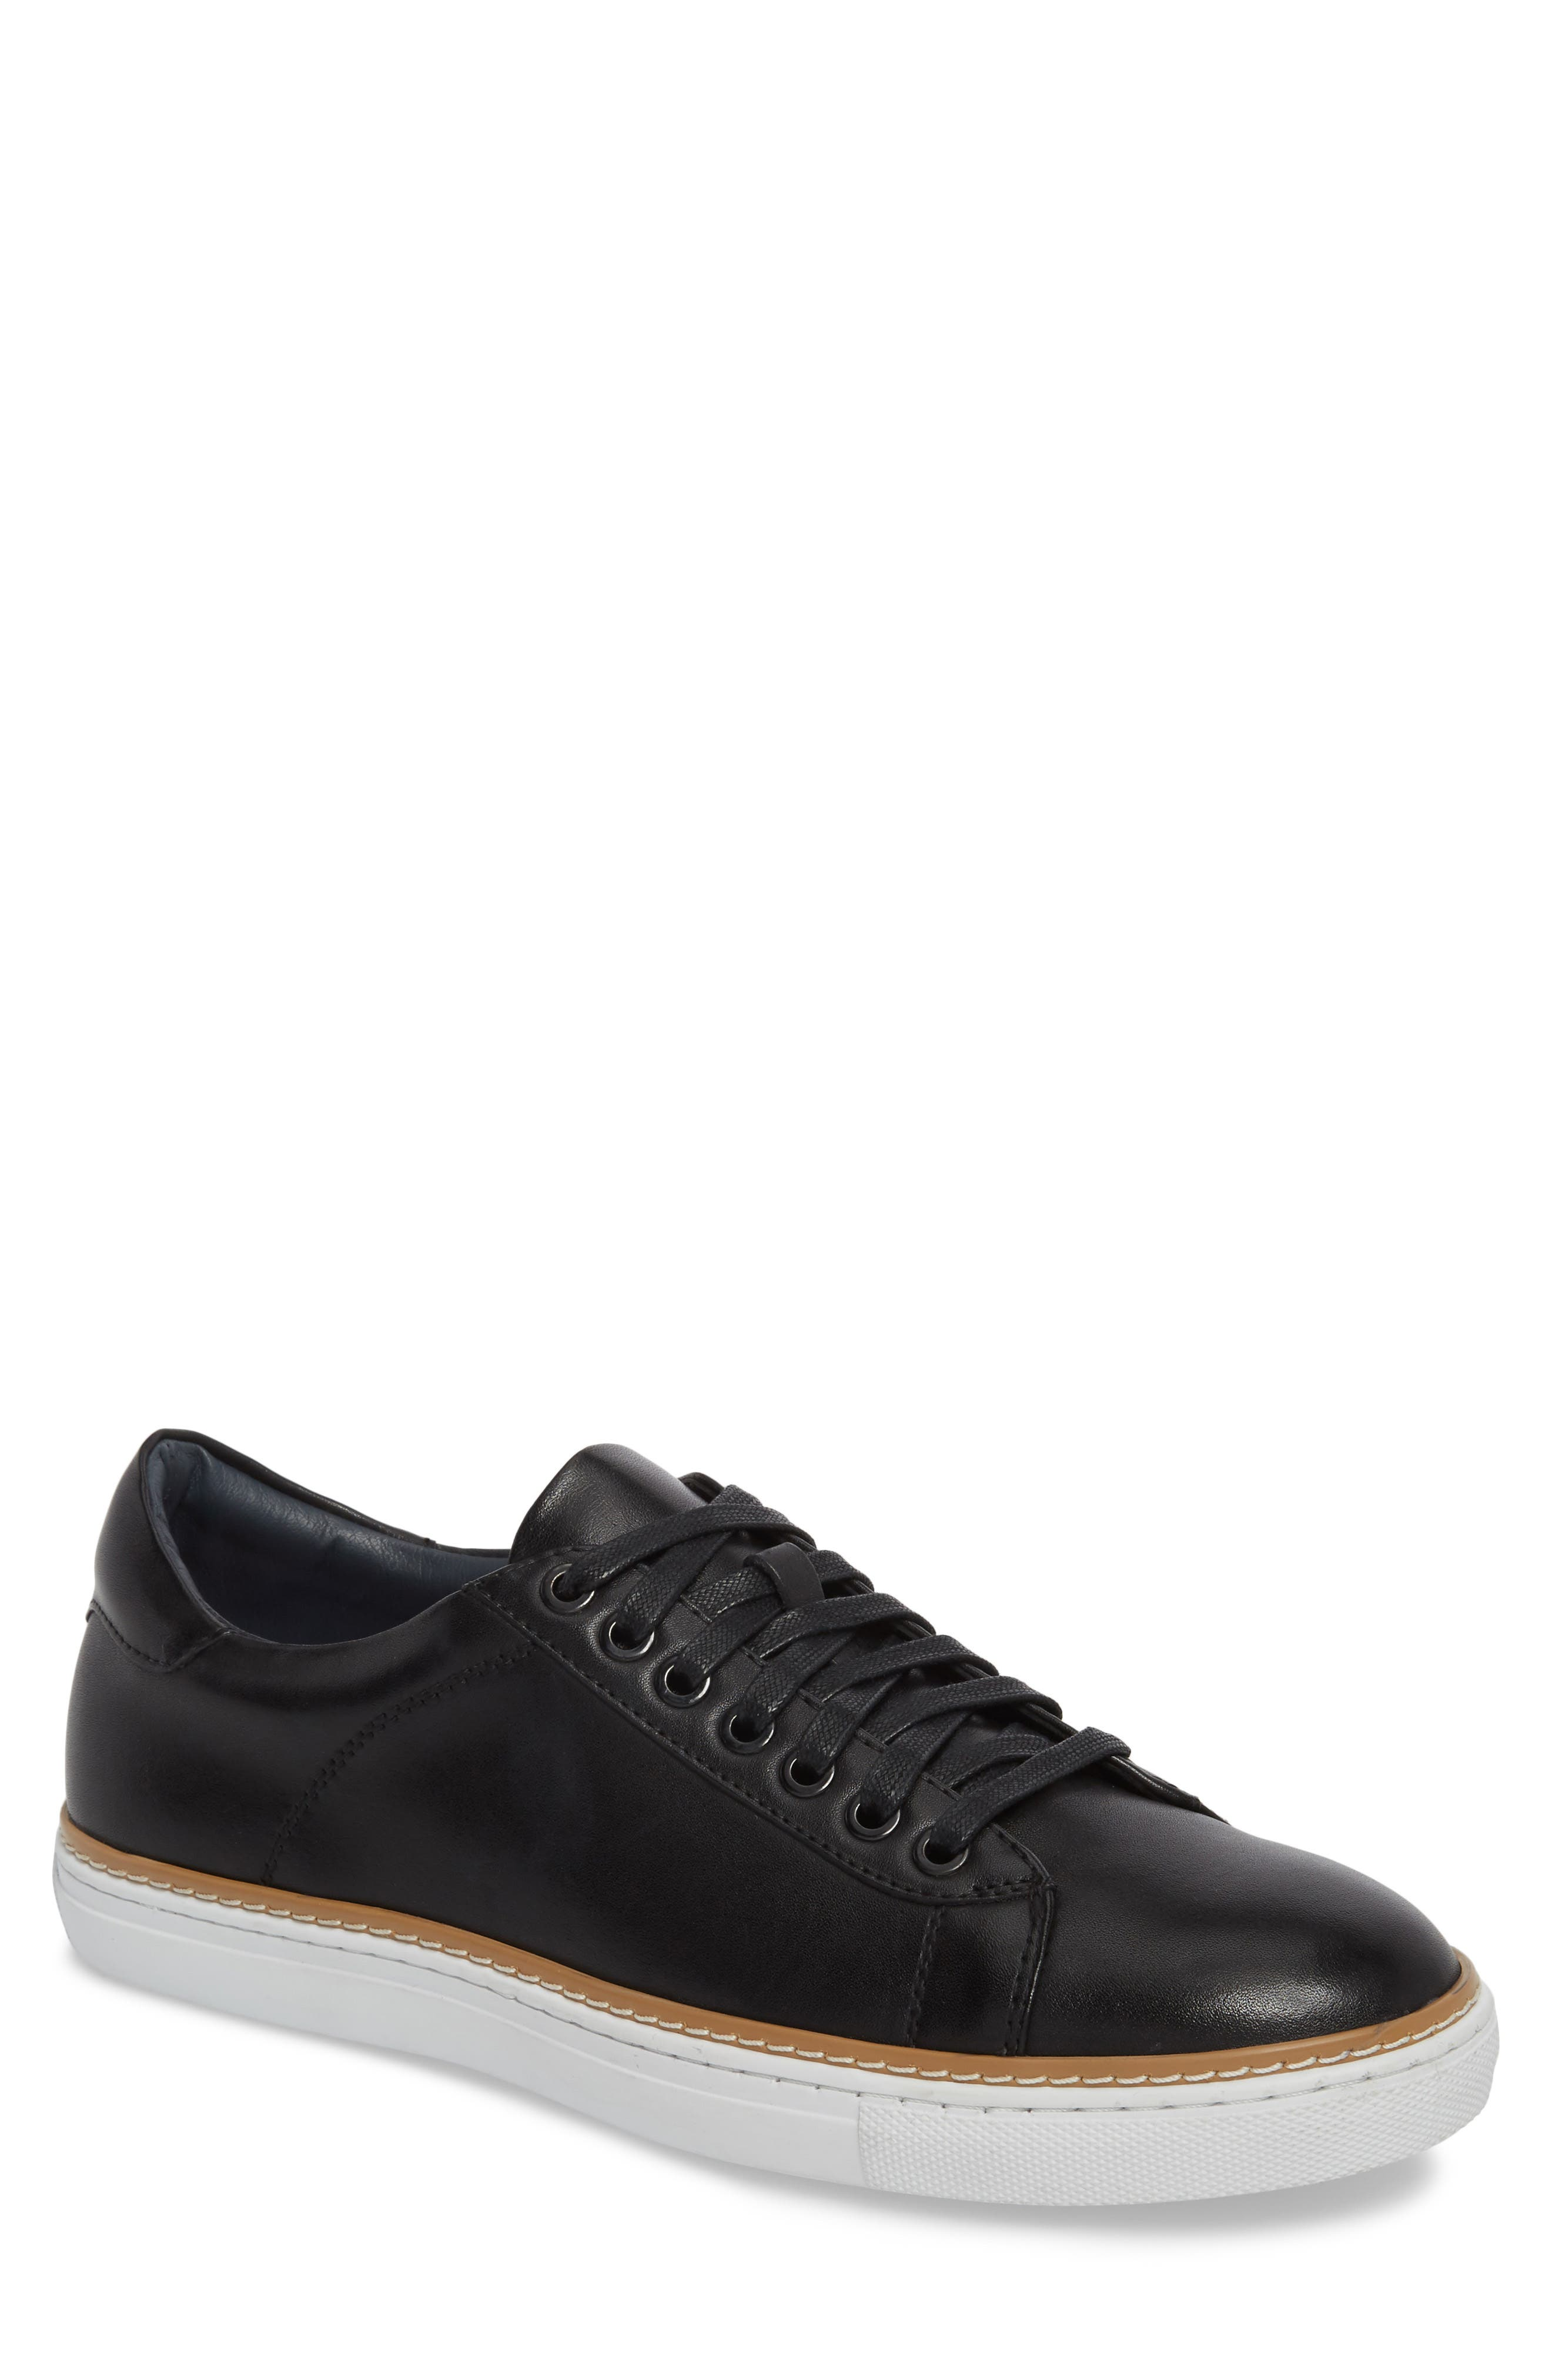 Alternate Image 1 Selected - English Laundry Juniper Low Top Sneaker (Men)